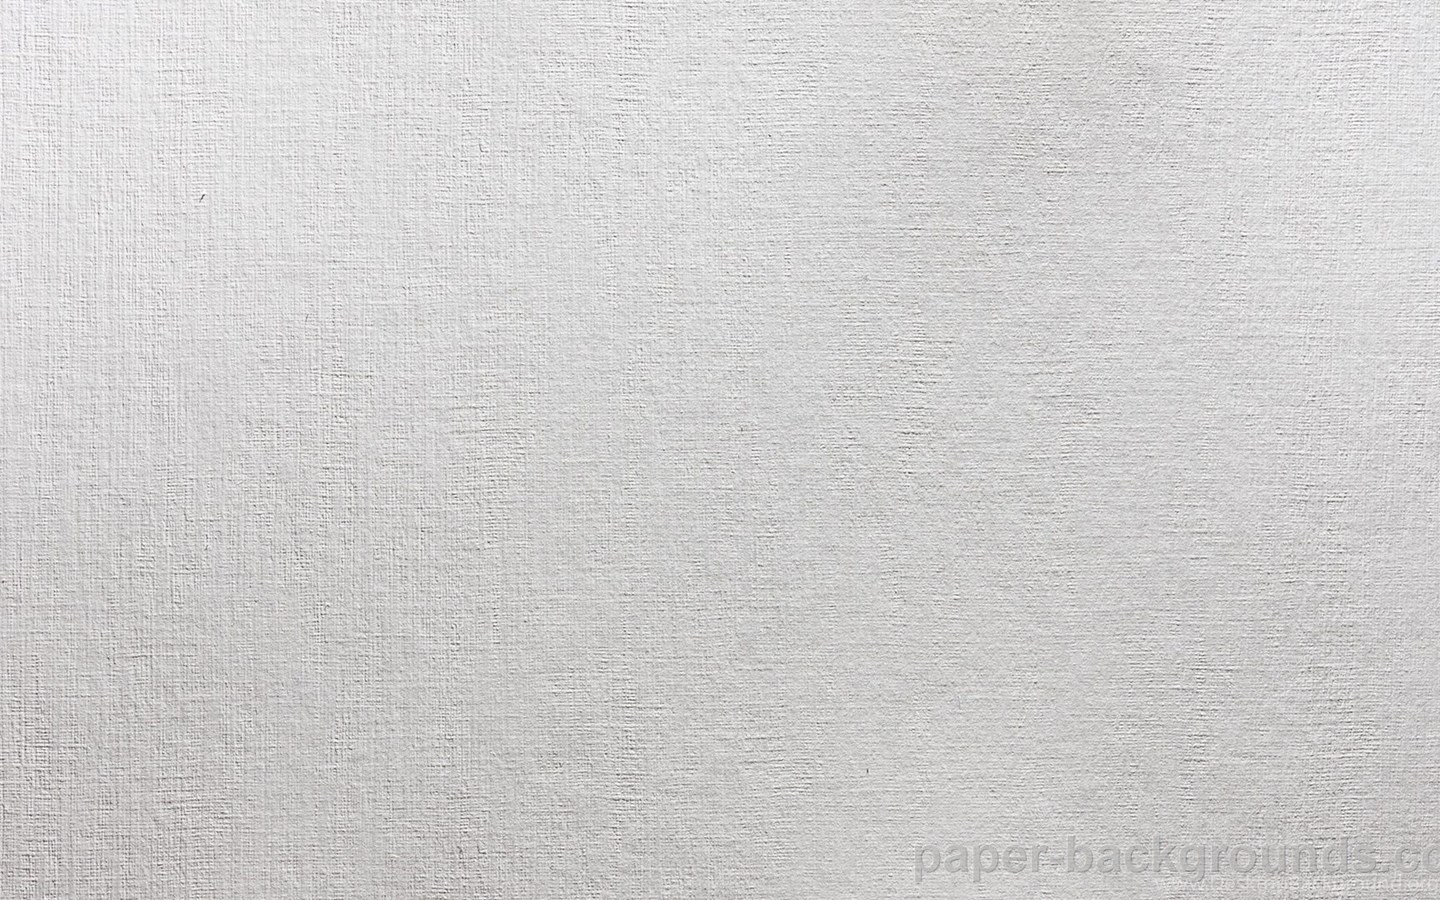 White backgrounds texture grunge picture gallery desktop - White grunge background 1920x1080 ...